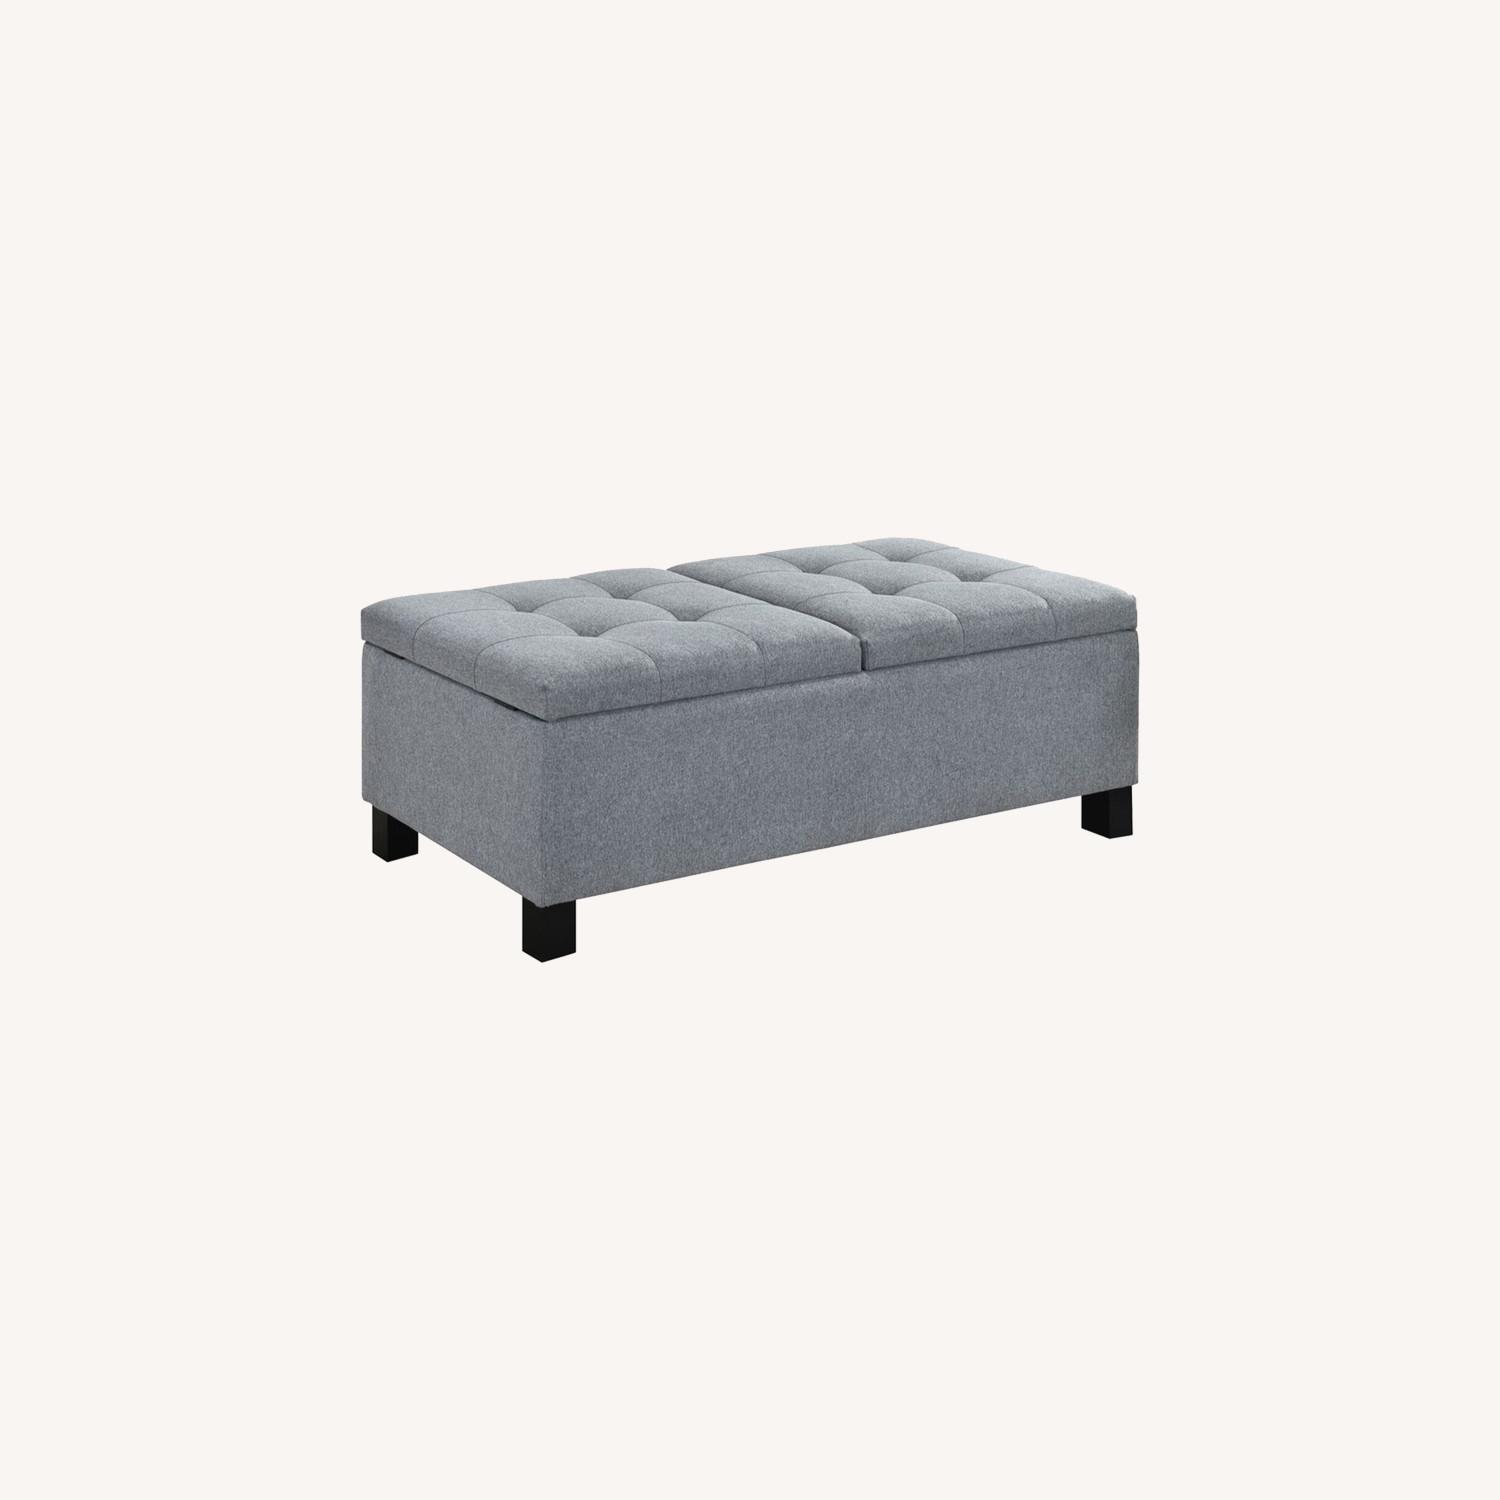 Modern Storage Bench In Grey Fabric - image-3